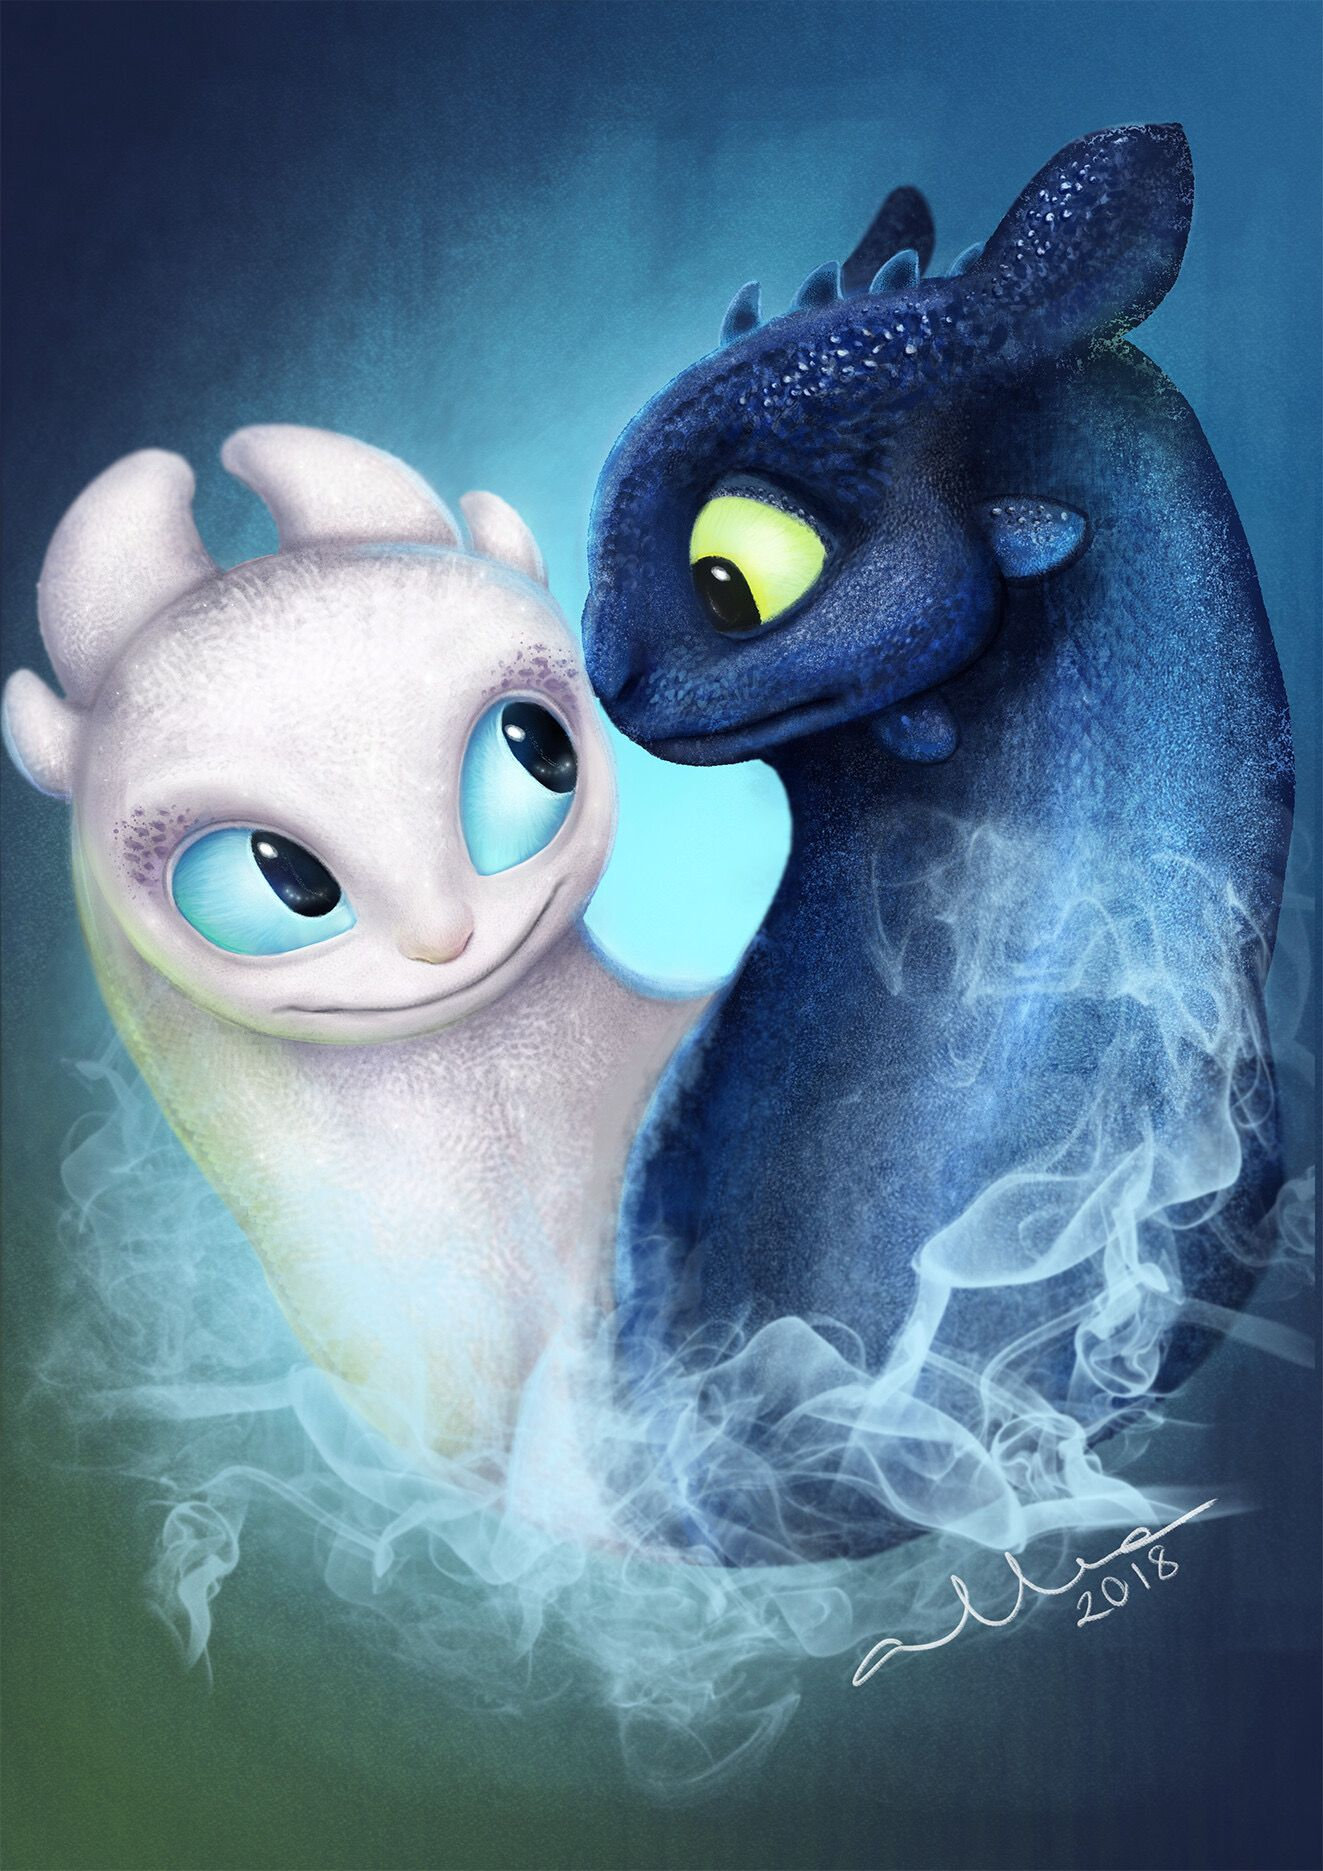 Pin By Kailie Butler On Como Entrenar A Tu Dragon Dragon Pictures Cute Disney Drawings Cute Animal Drawings